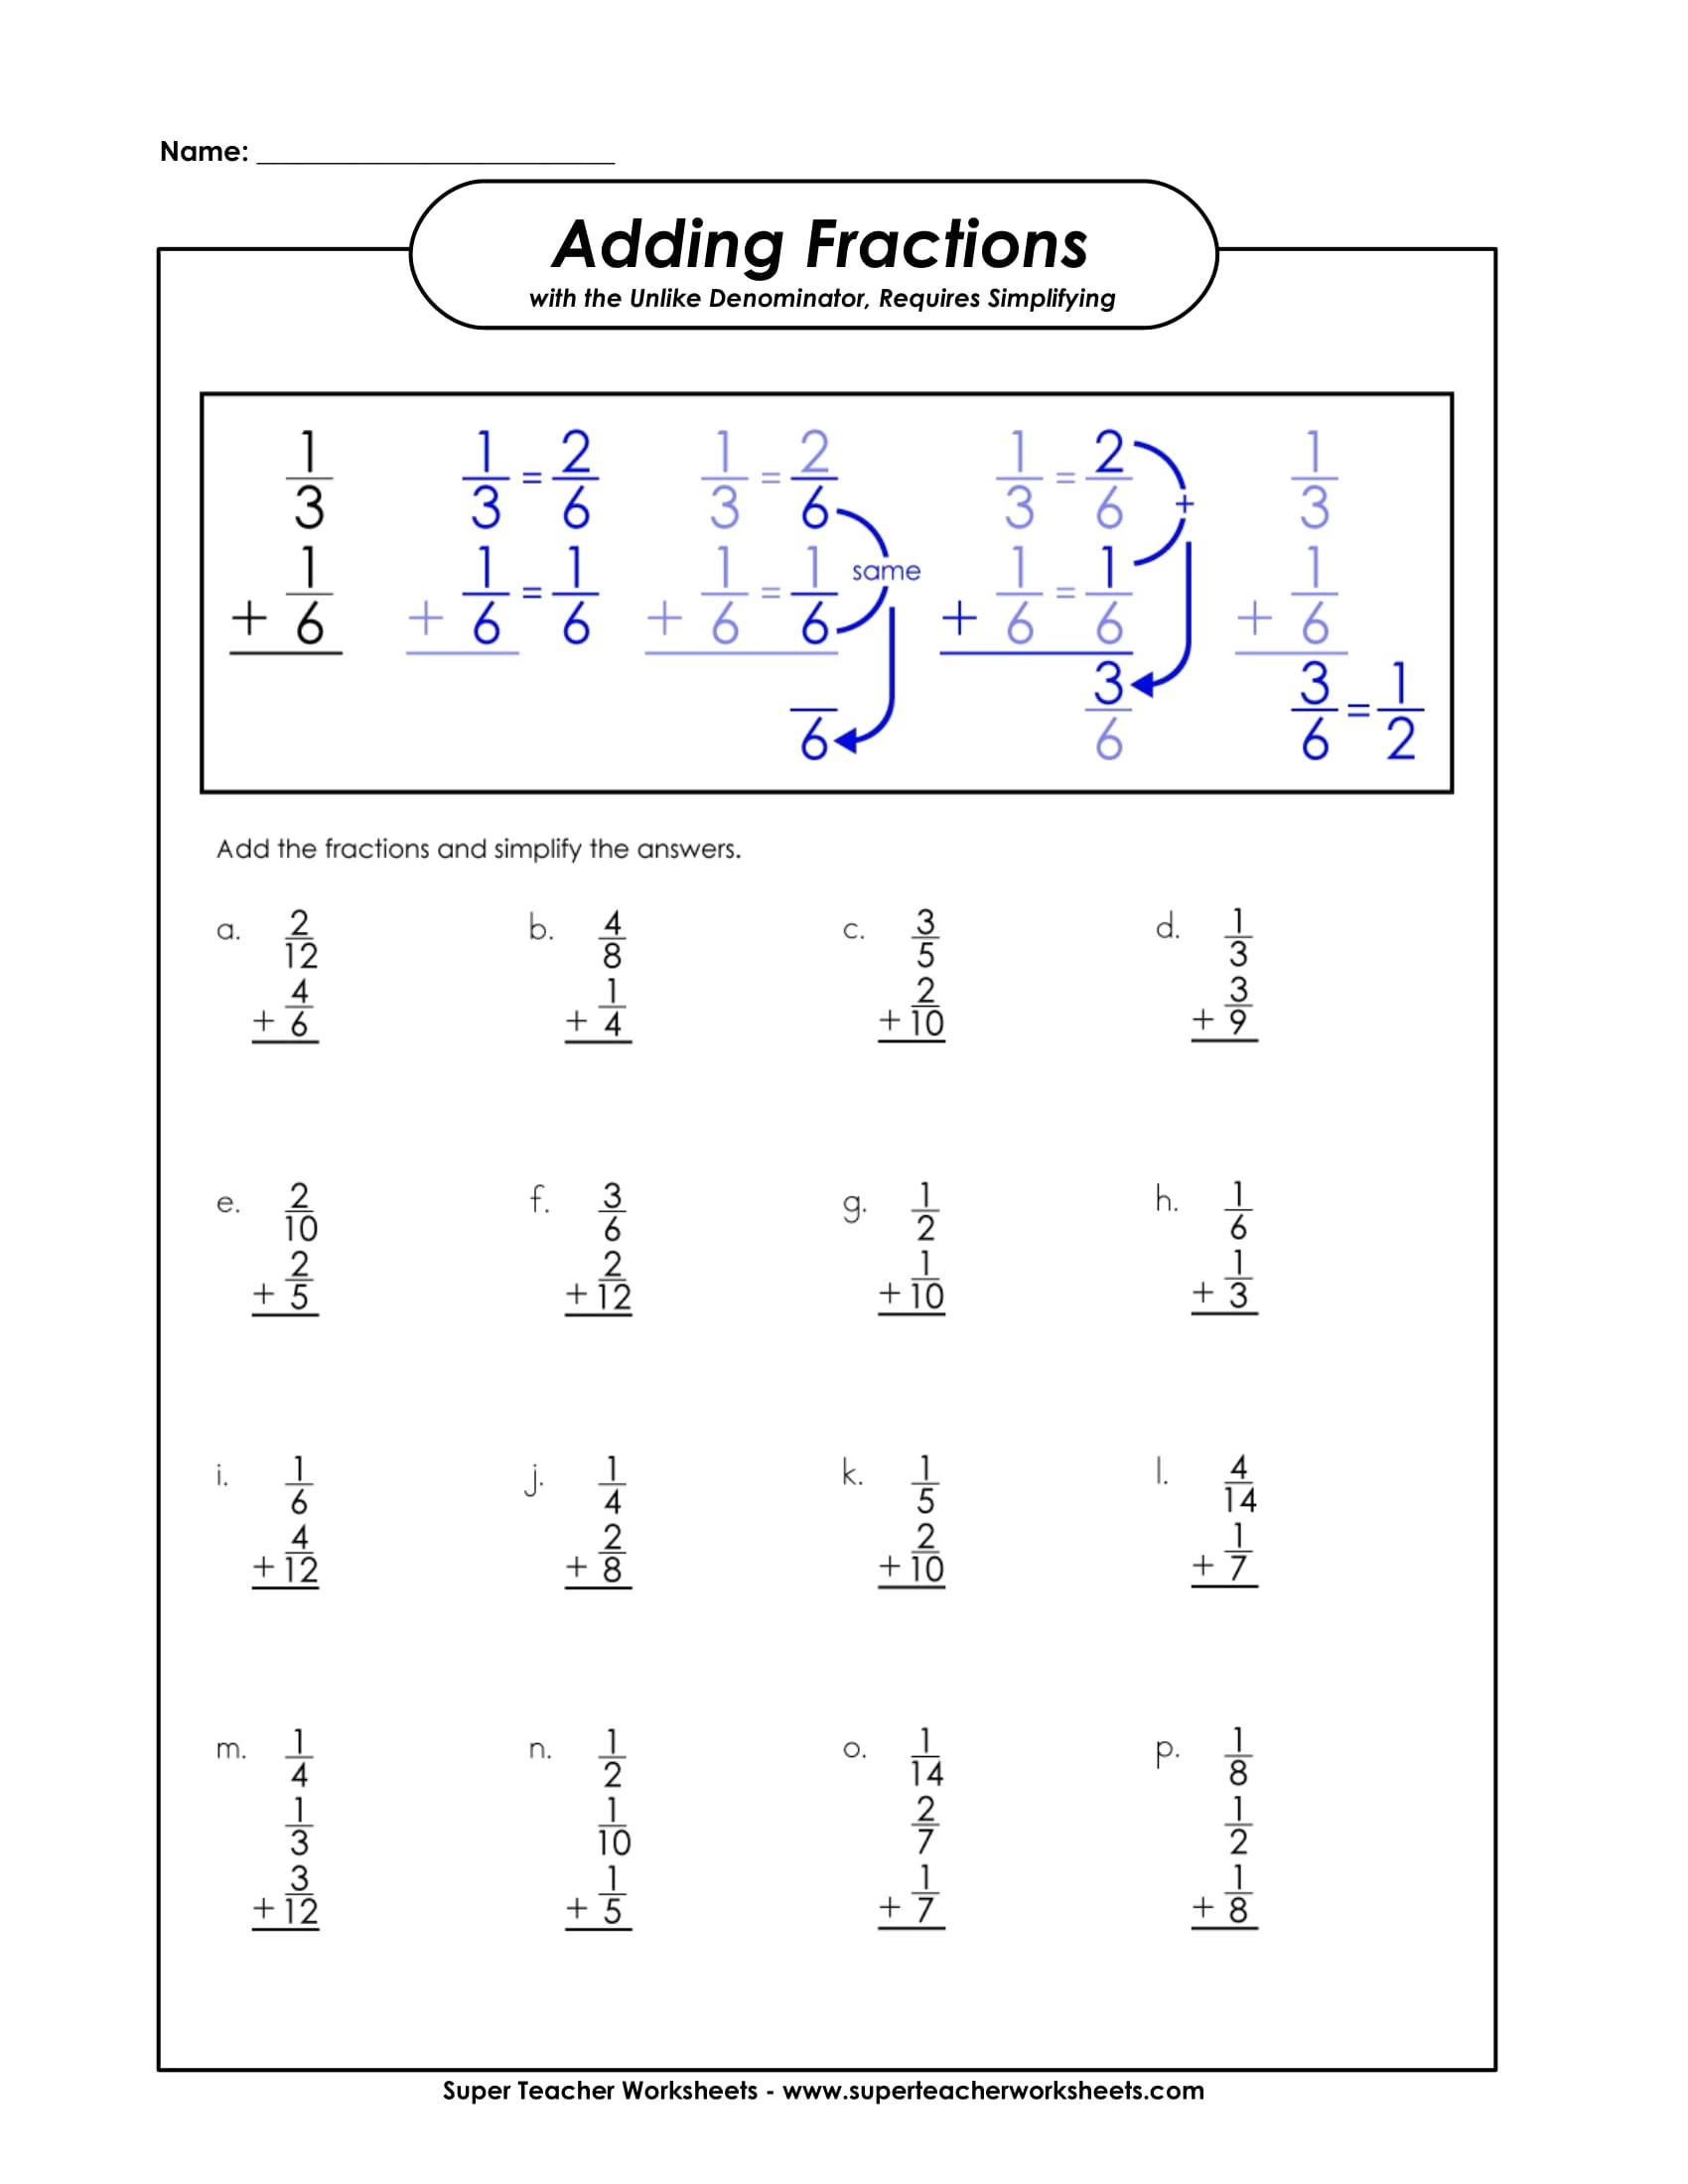 Adding Fractions Sample Worksheet